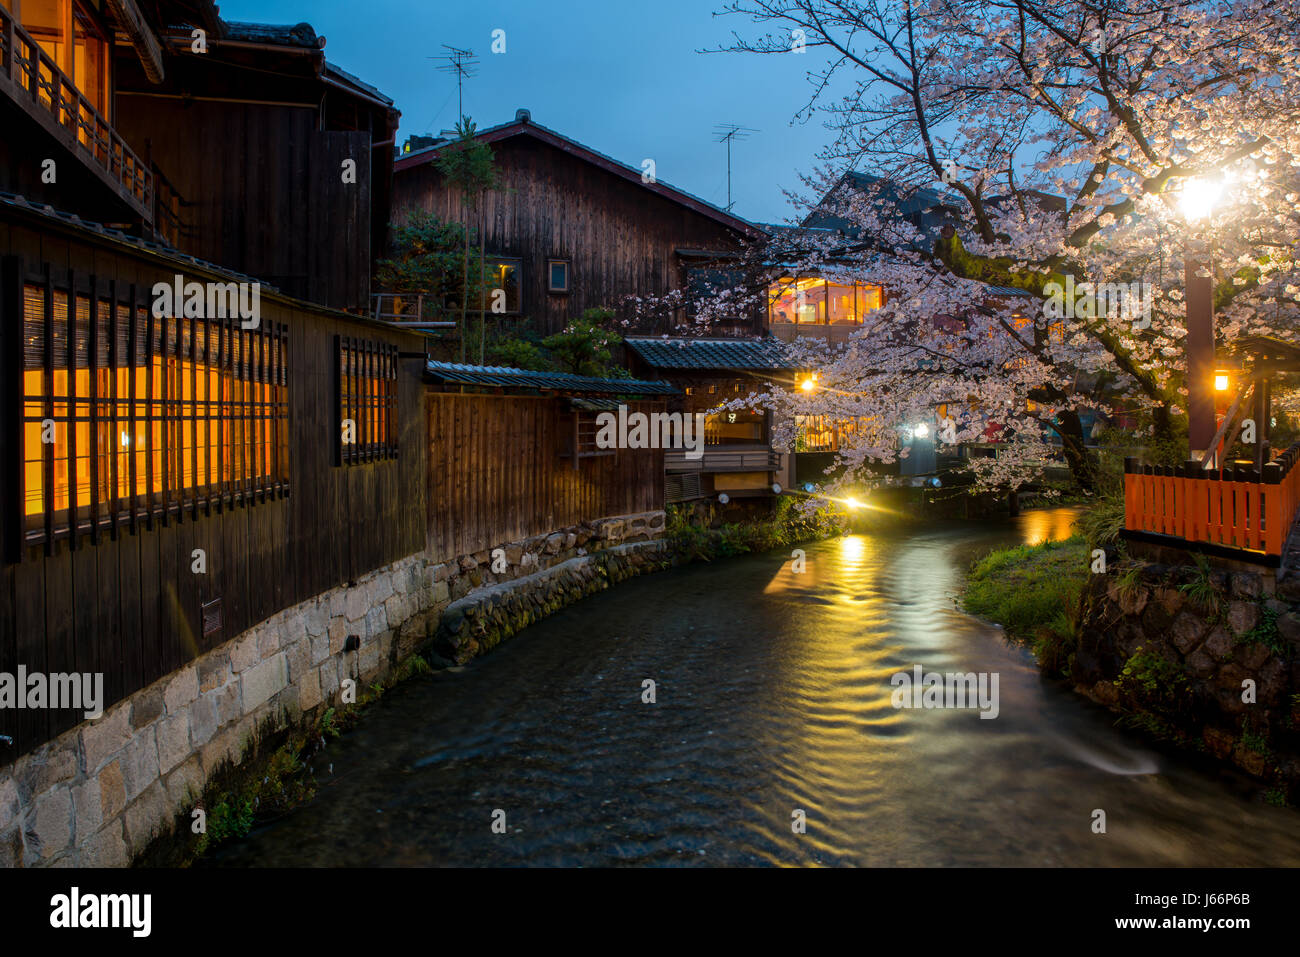 Kyoto, Japan at the Shirakawa River in the Gion District during the spring. Cherry blosson season in Kyoto, Japan. - Stock Image